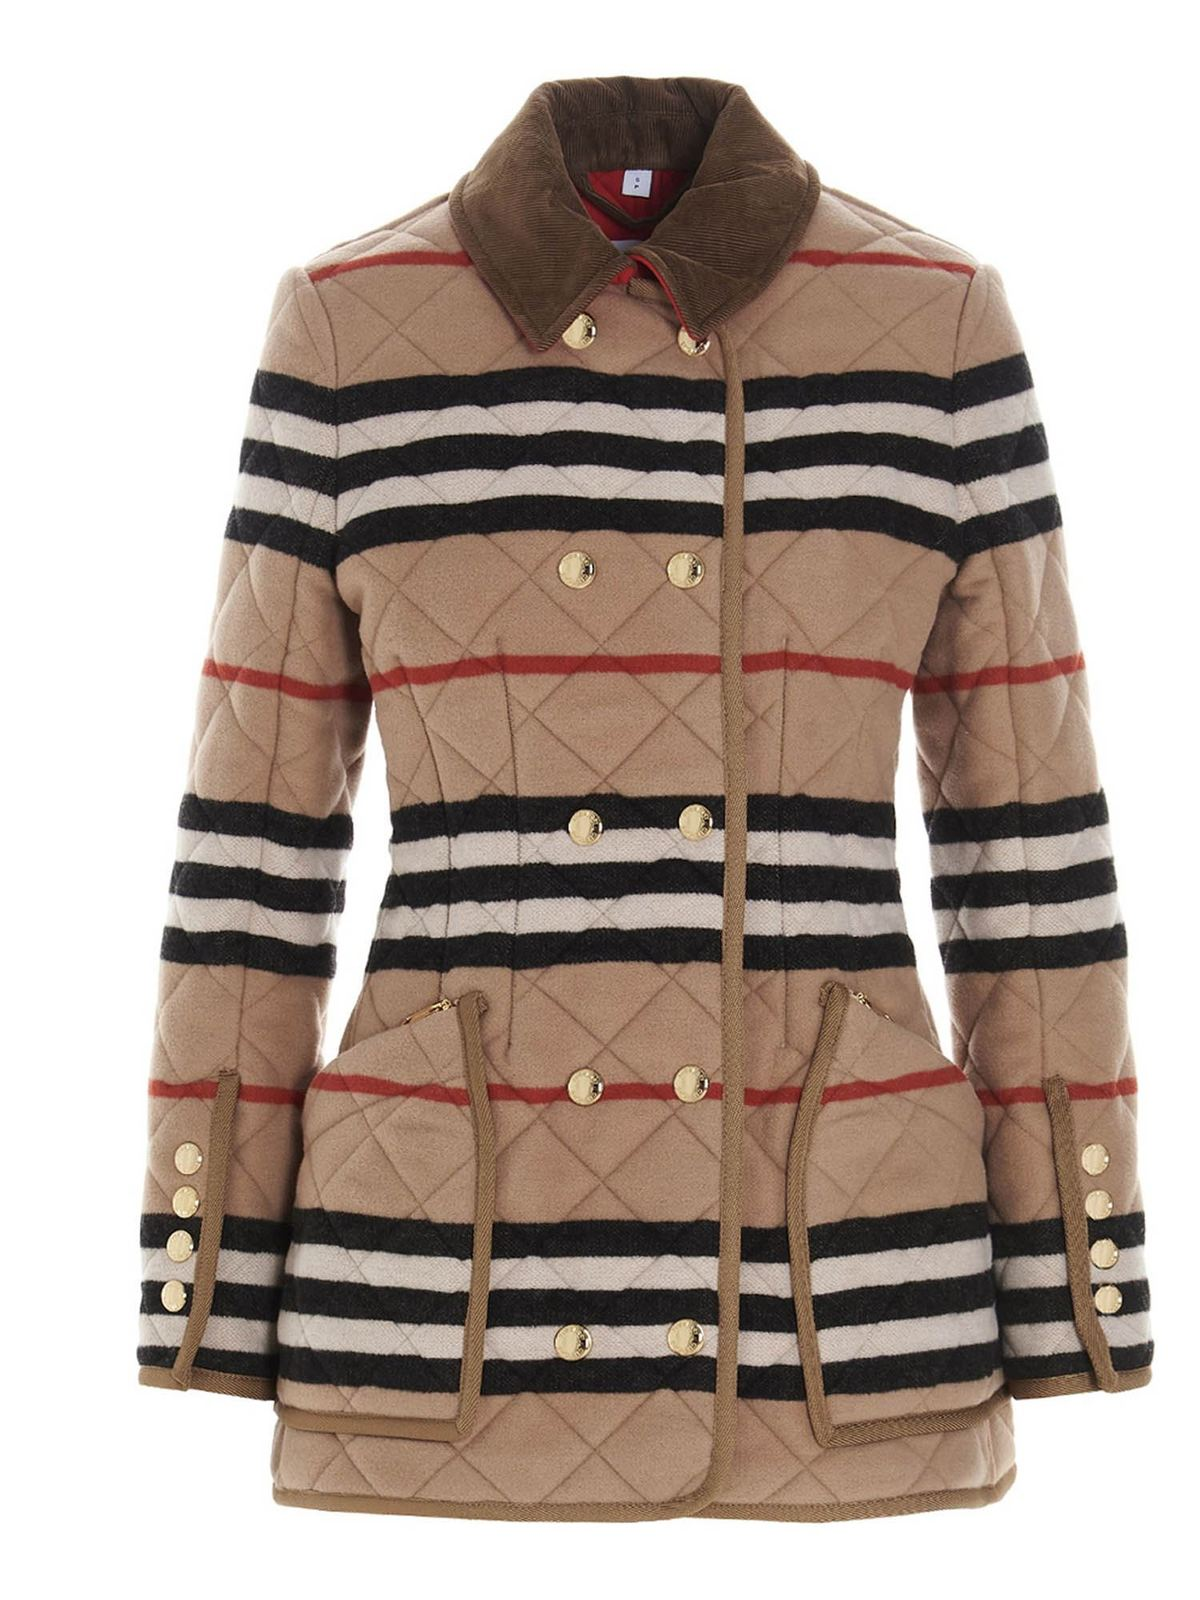 Burberry STRIPED QUILTED JACKET IN LIGHT CAMEL COLOR